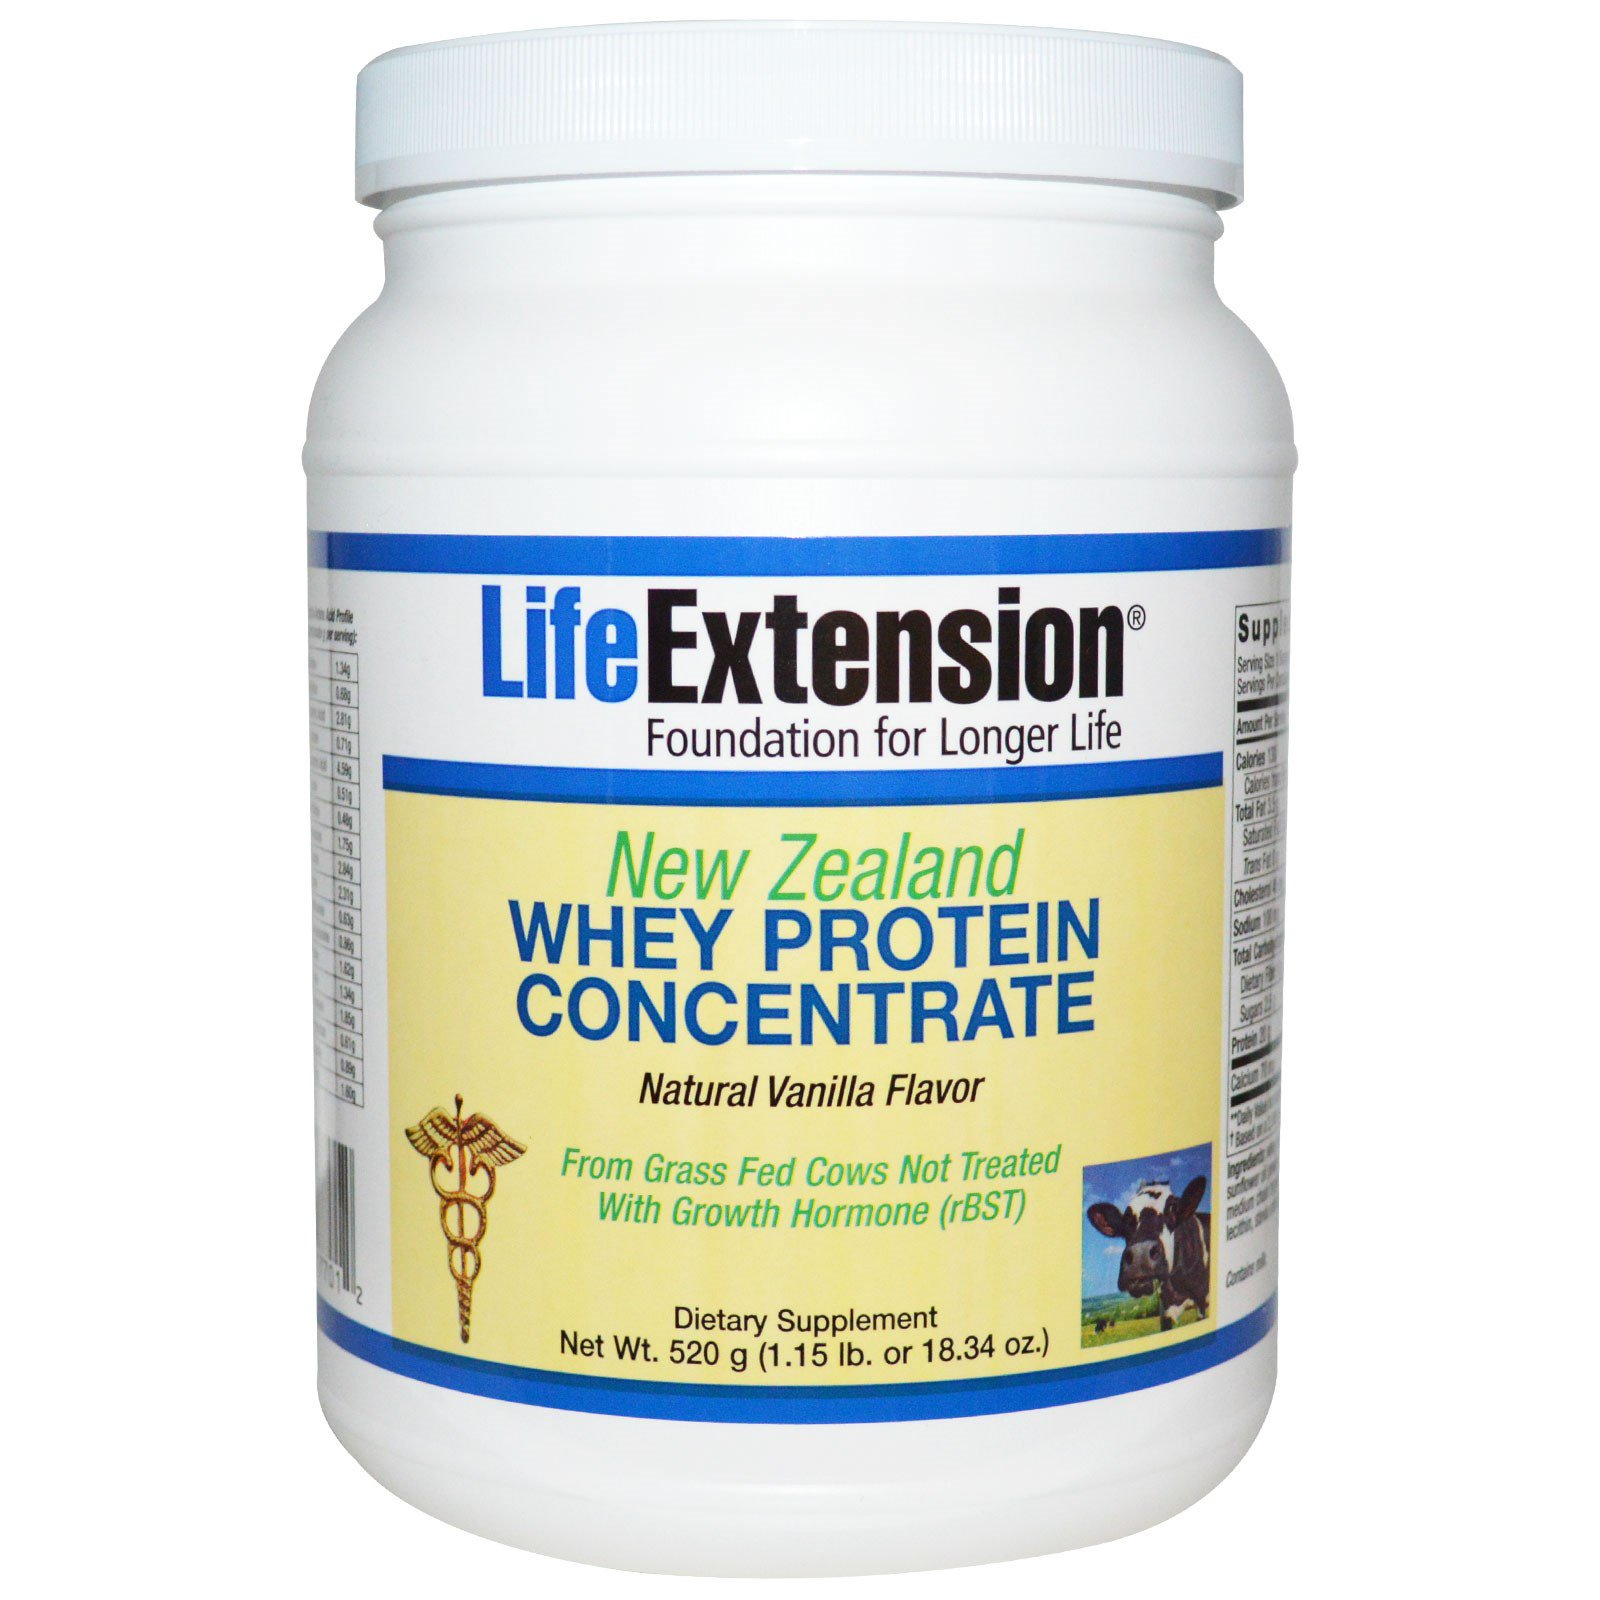 Life Extension, New Zealand Whey Protein Concentrate, Natural